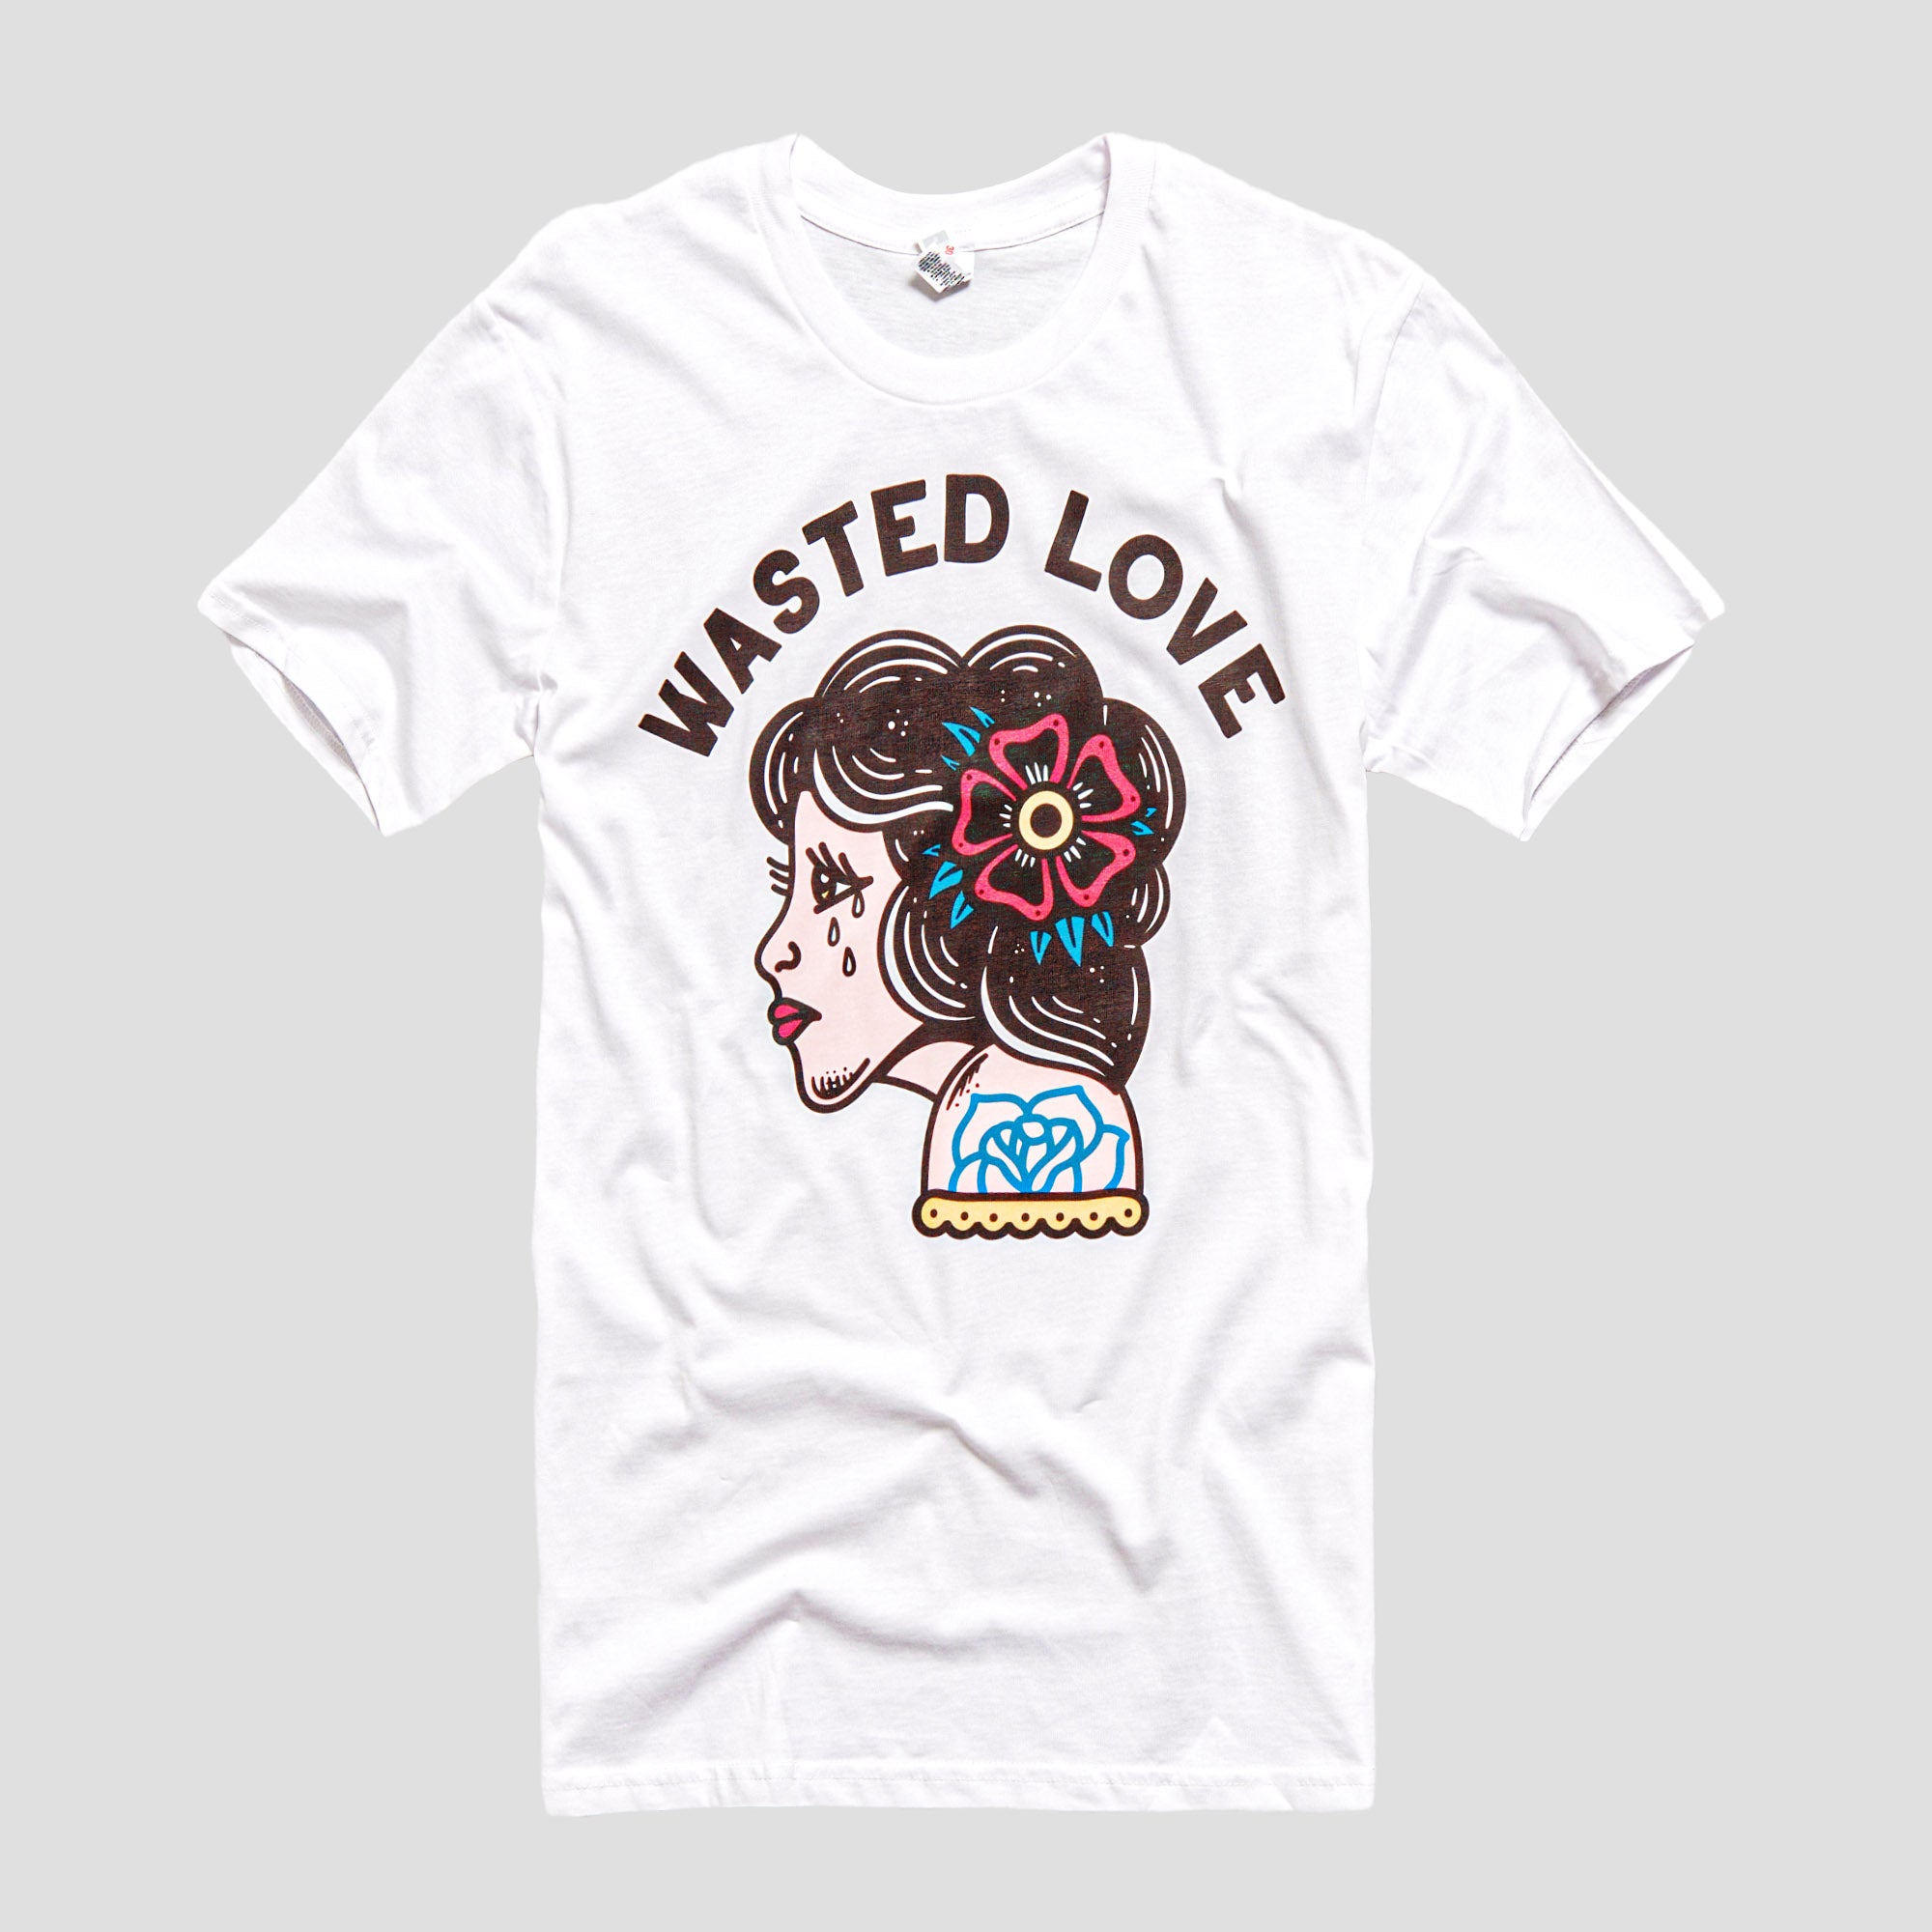 Wasted Love (Front Print)